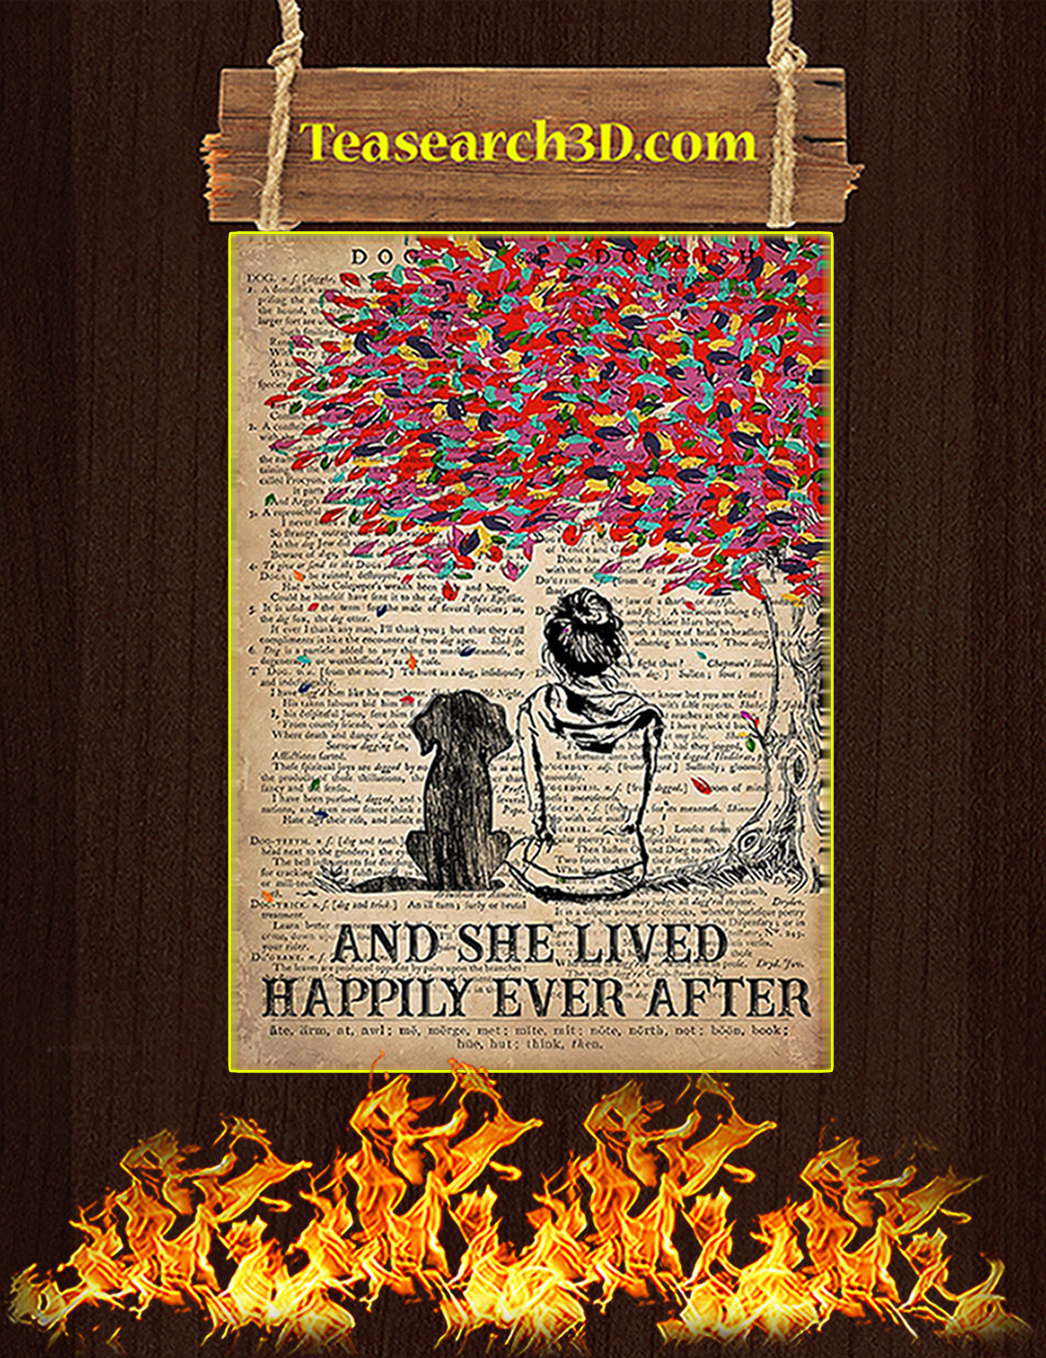 Dog And She Lived Happily Ever After Poster A1